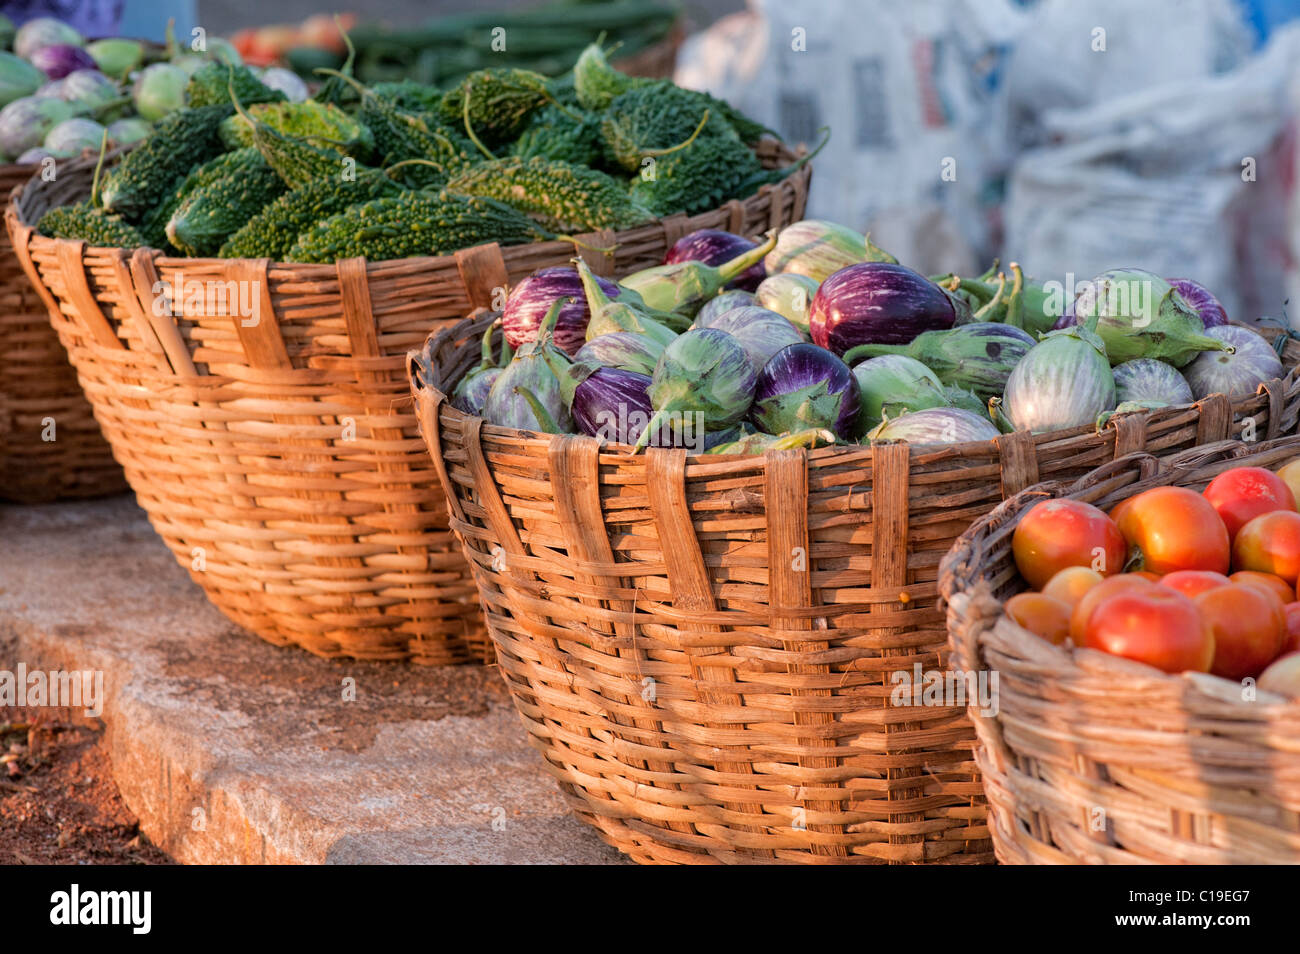 Aubergines / Eggplant , Tomatoes and Bitter gourd in baskets at an Indian market. Andhra Pradesh, India - Stock Image